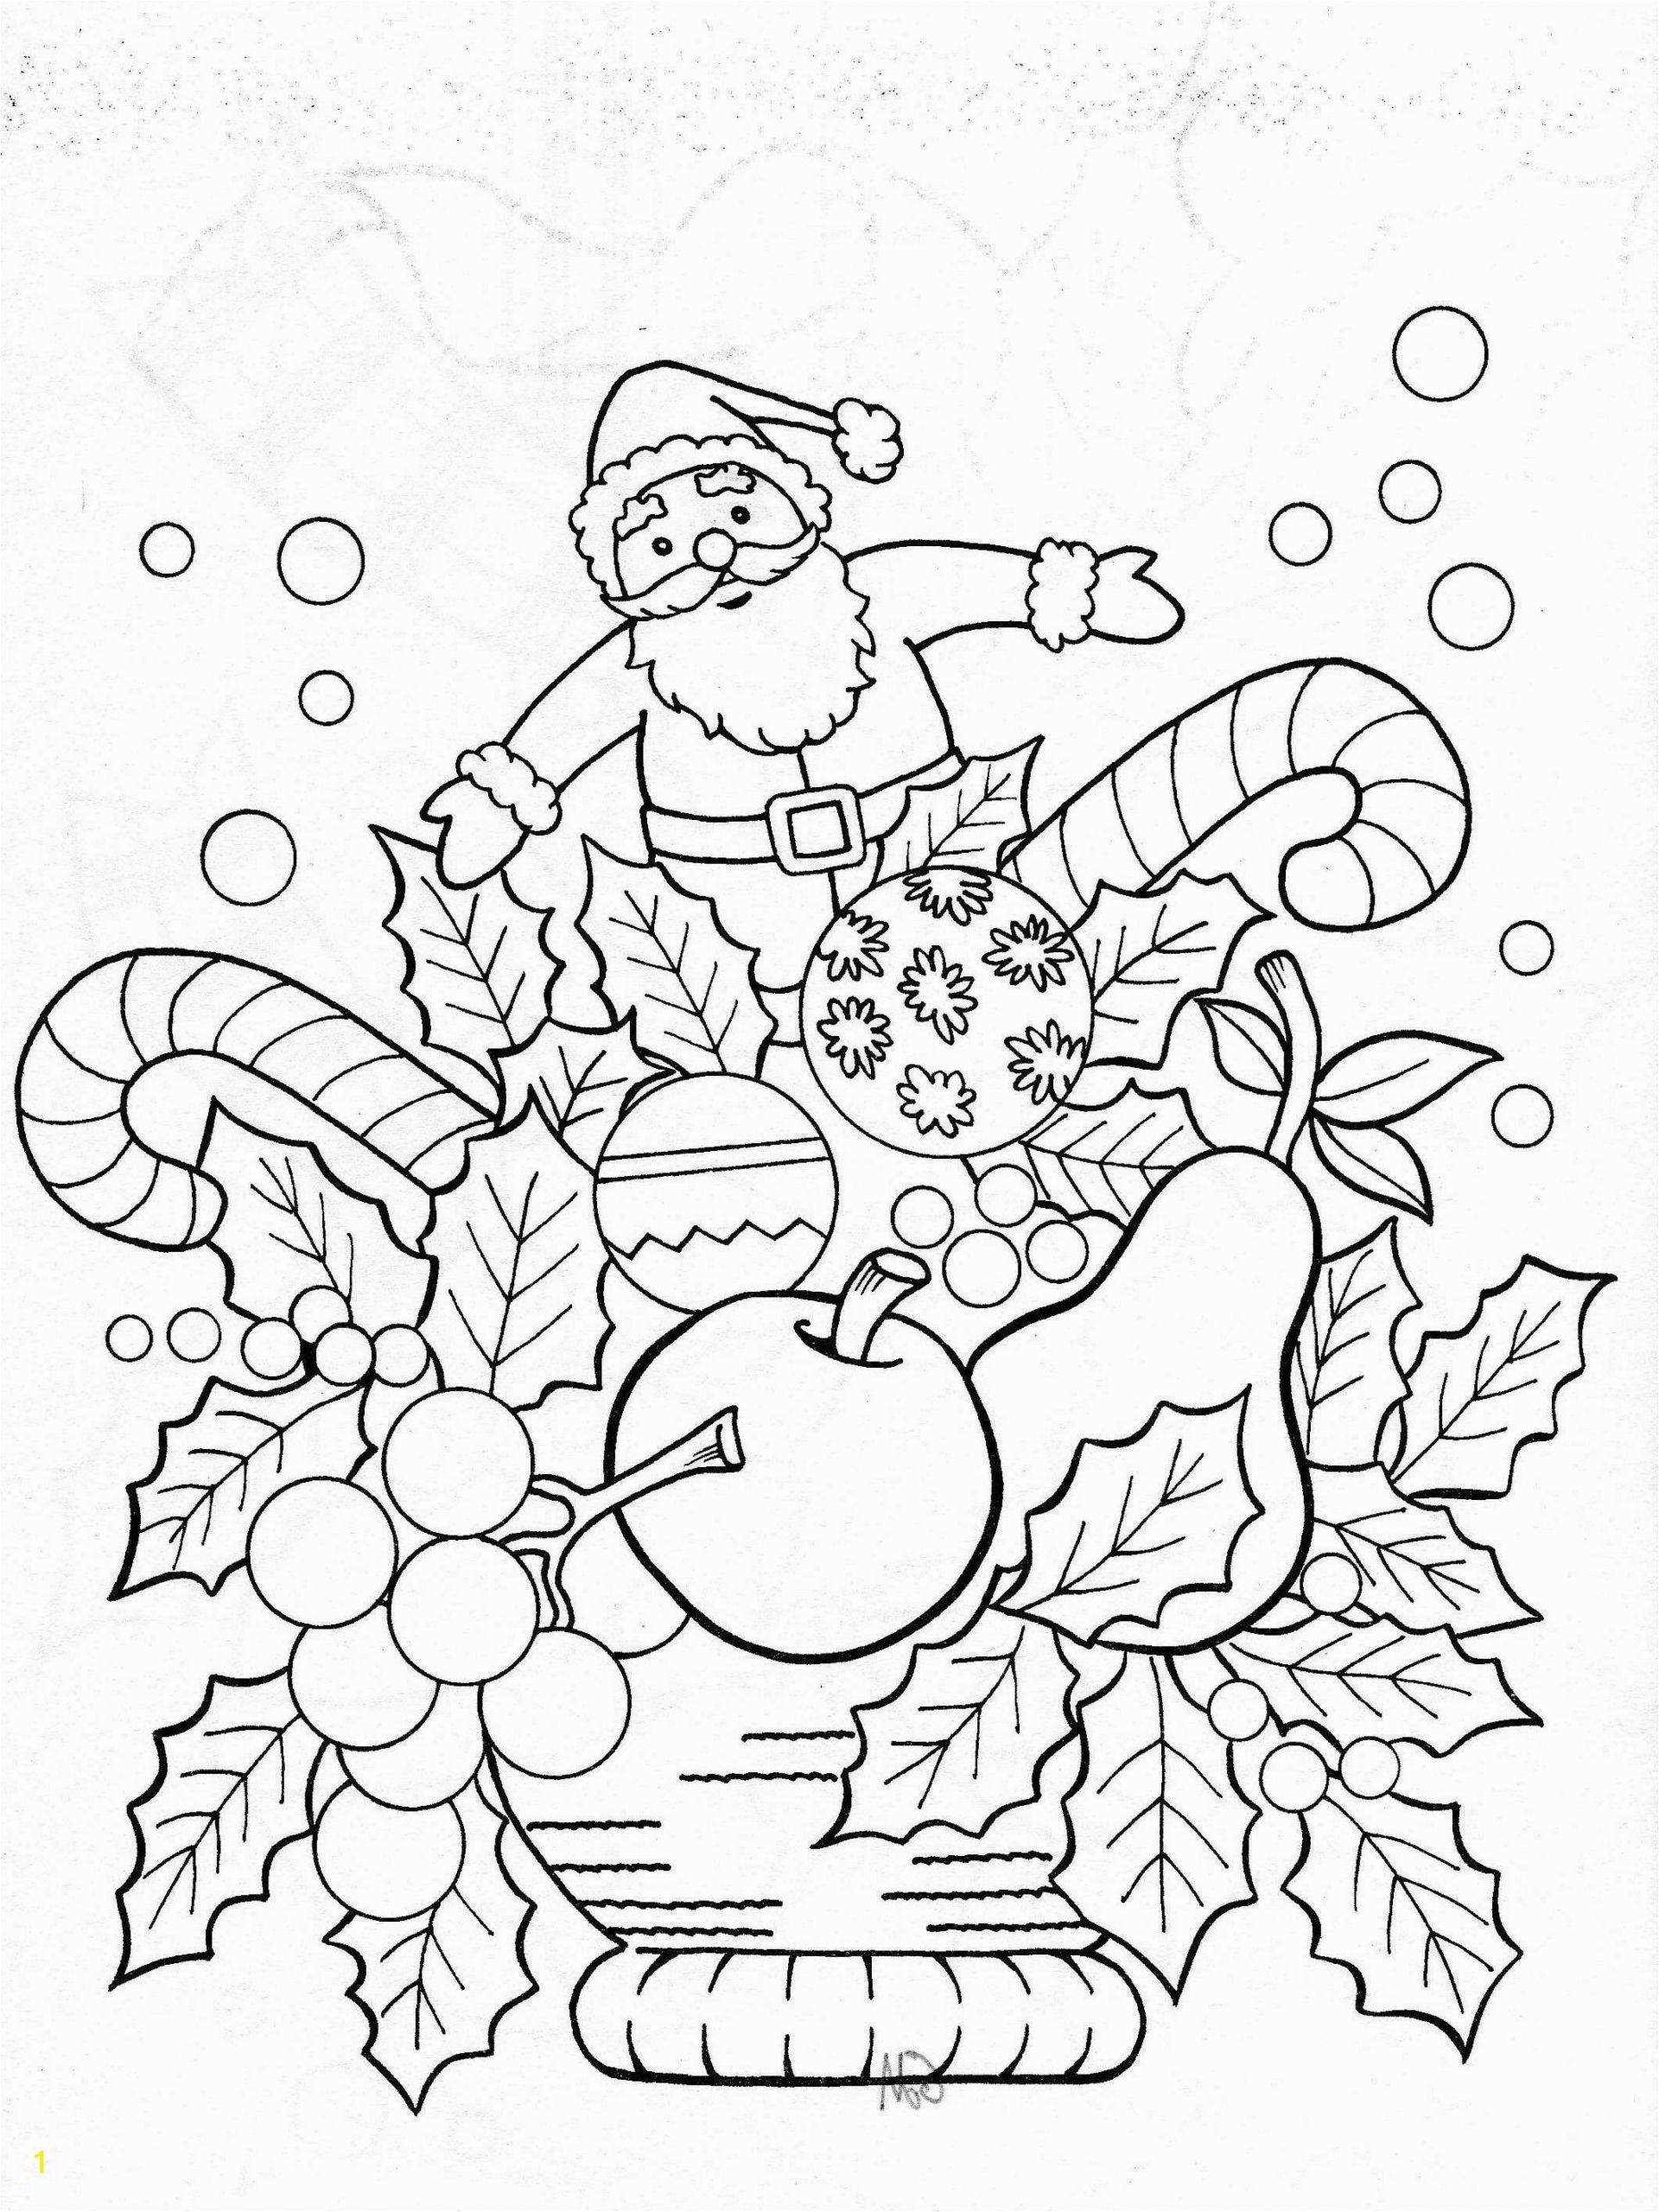 Cool Art Coloring Pages Christmas Coloring Pages for Printable New Cool Coloring